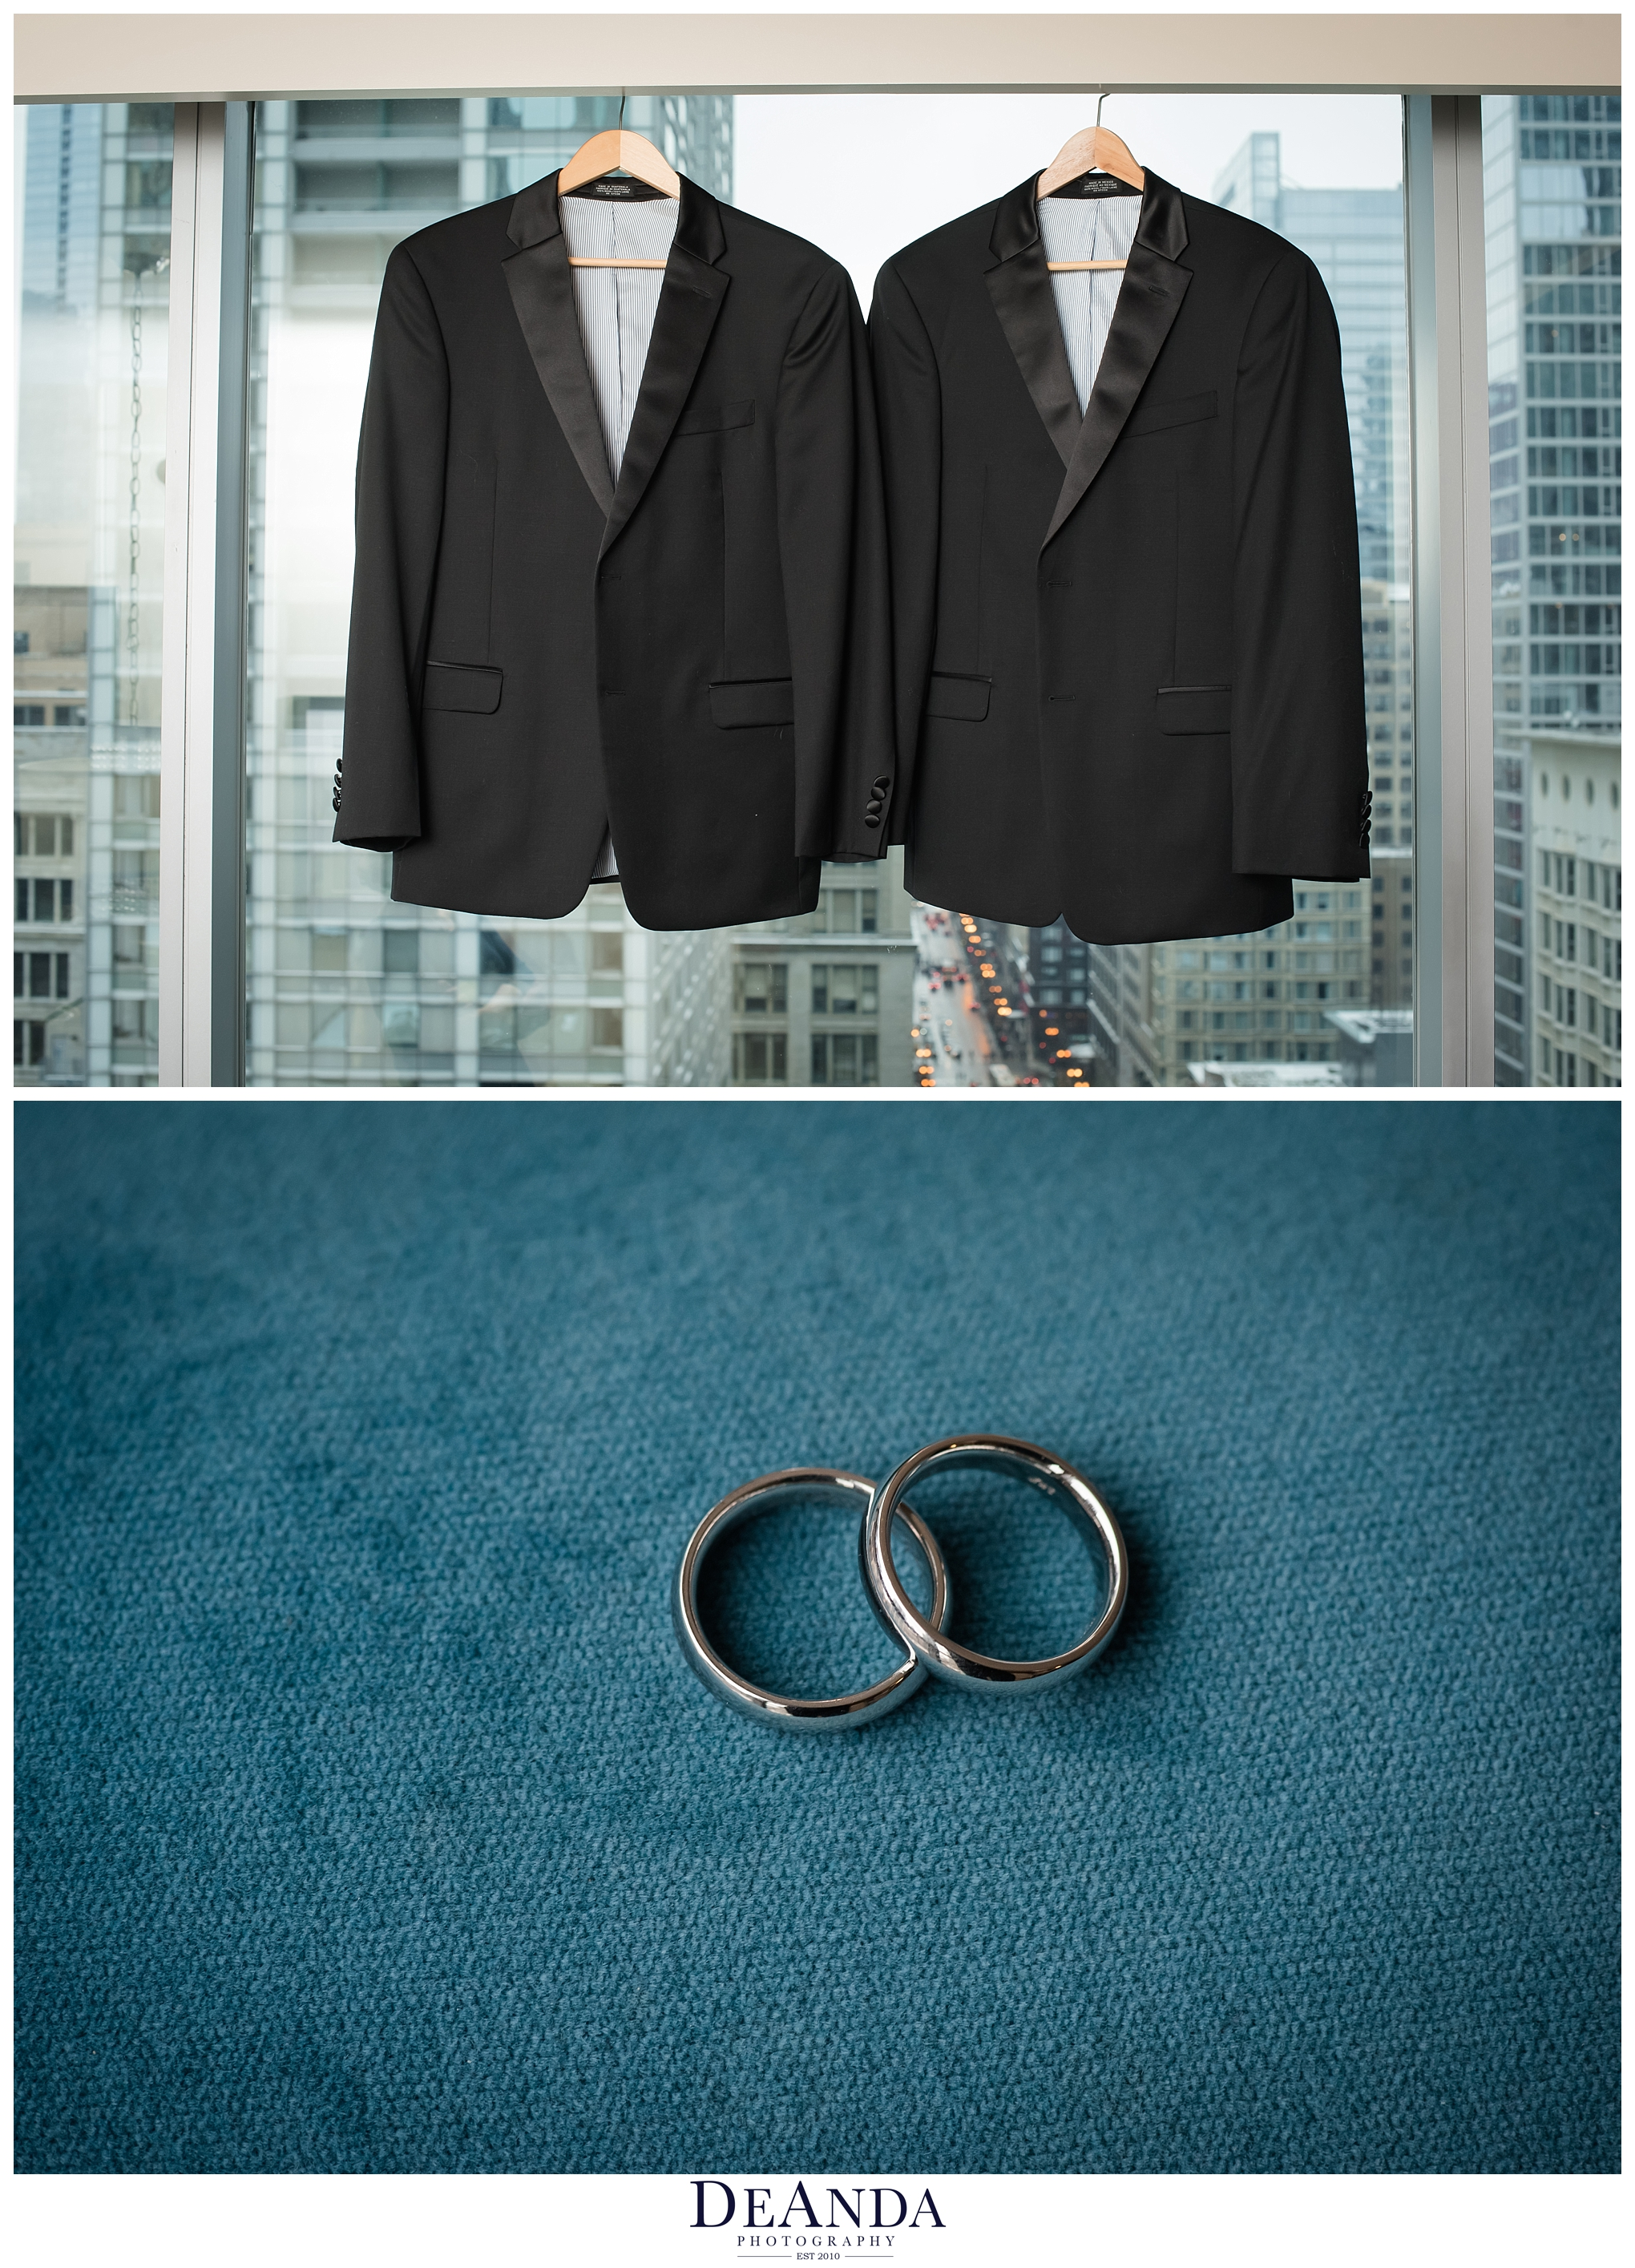 same sex wedding grooms details from the wit hotel chicago wedding gay wedding suits and rings